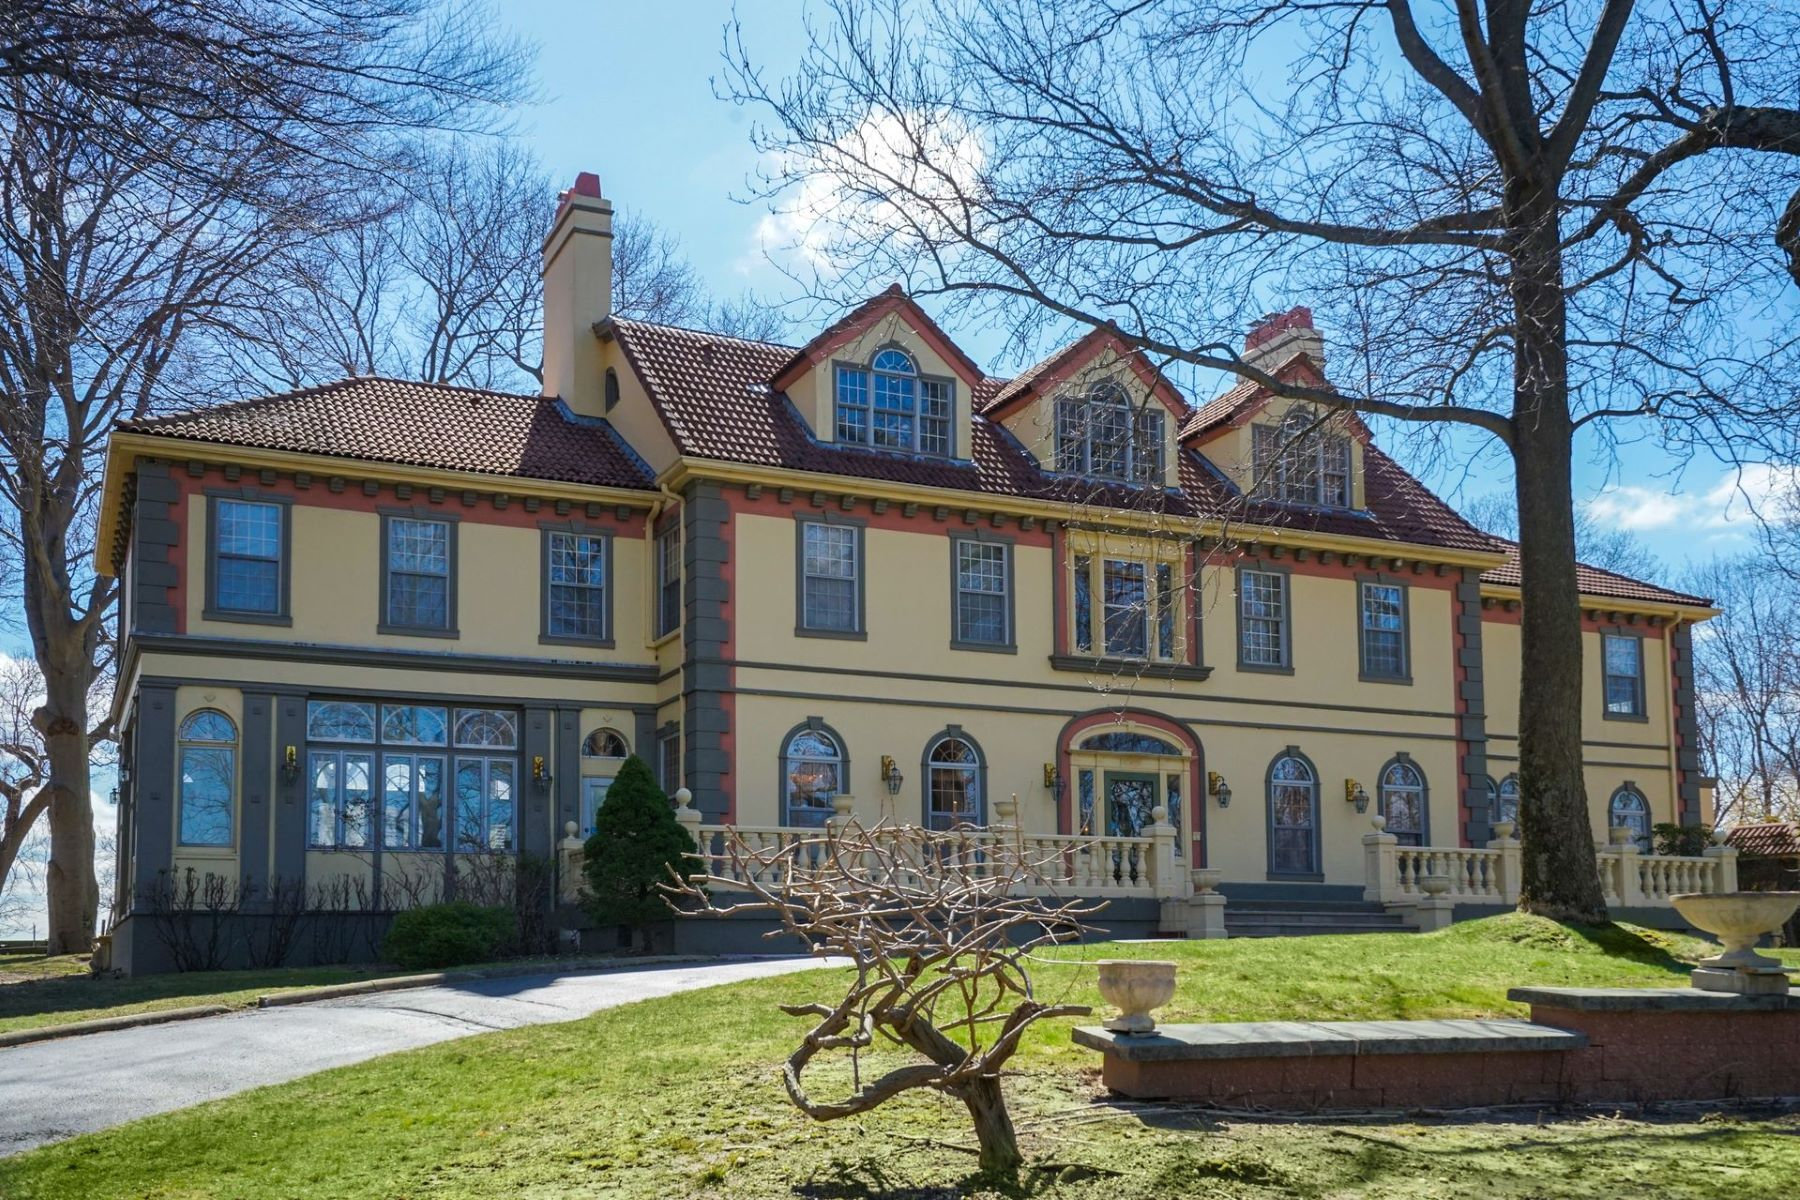 Single Family Homes for Sale at Old Field 8 Childs Ln Old Field, New York 11733 United States